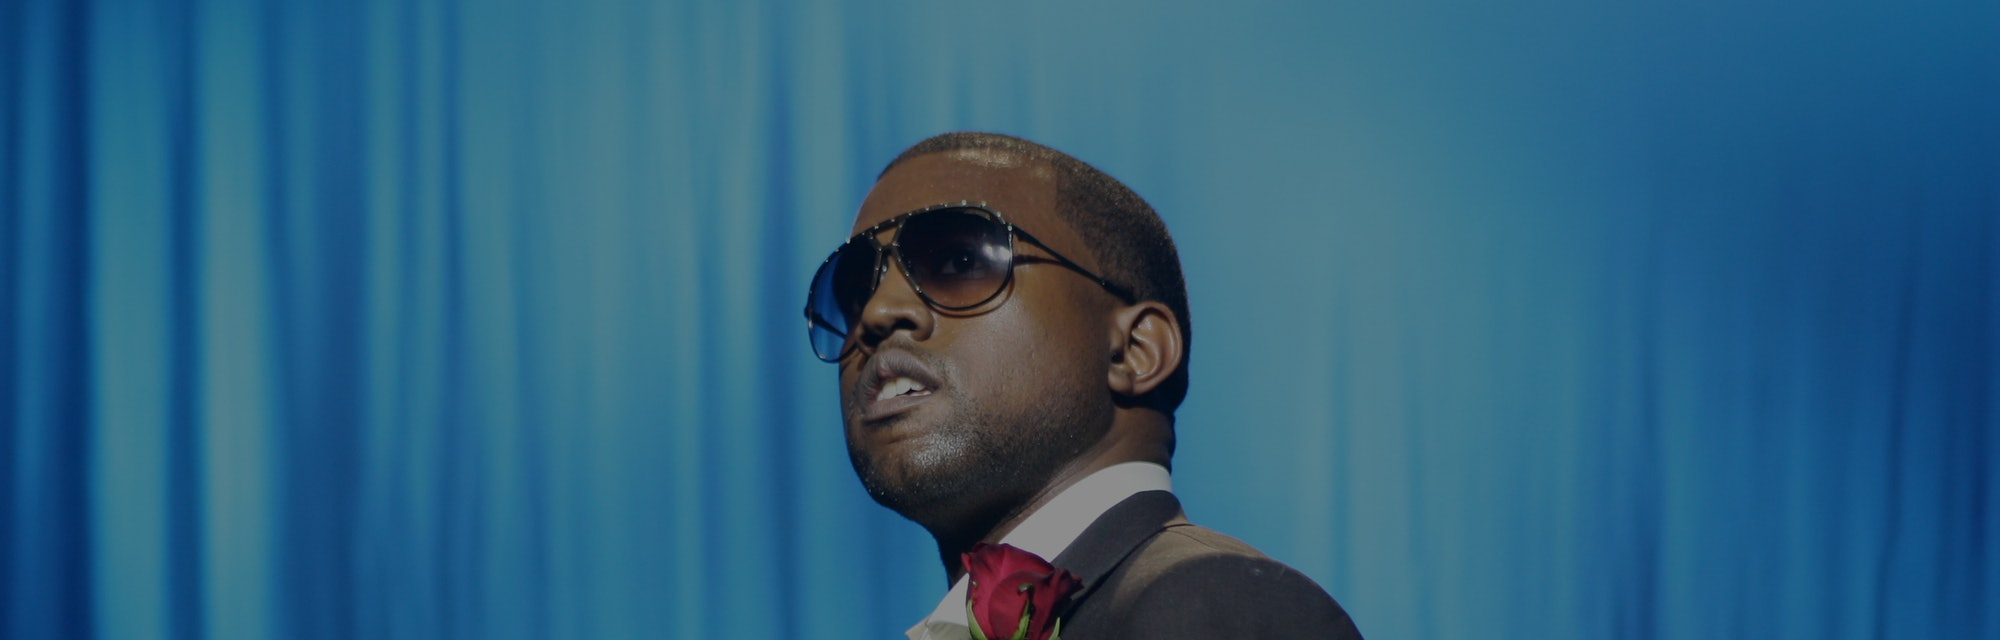 Rapper and artist Kanye West can be seen in a suit with a red handkerchief in his pocket. He is wearing sunglasses and looking upward.